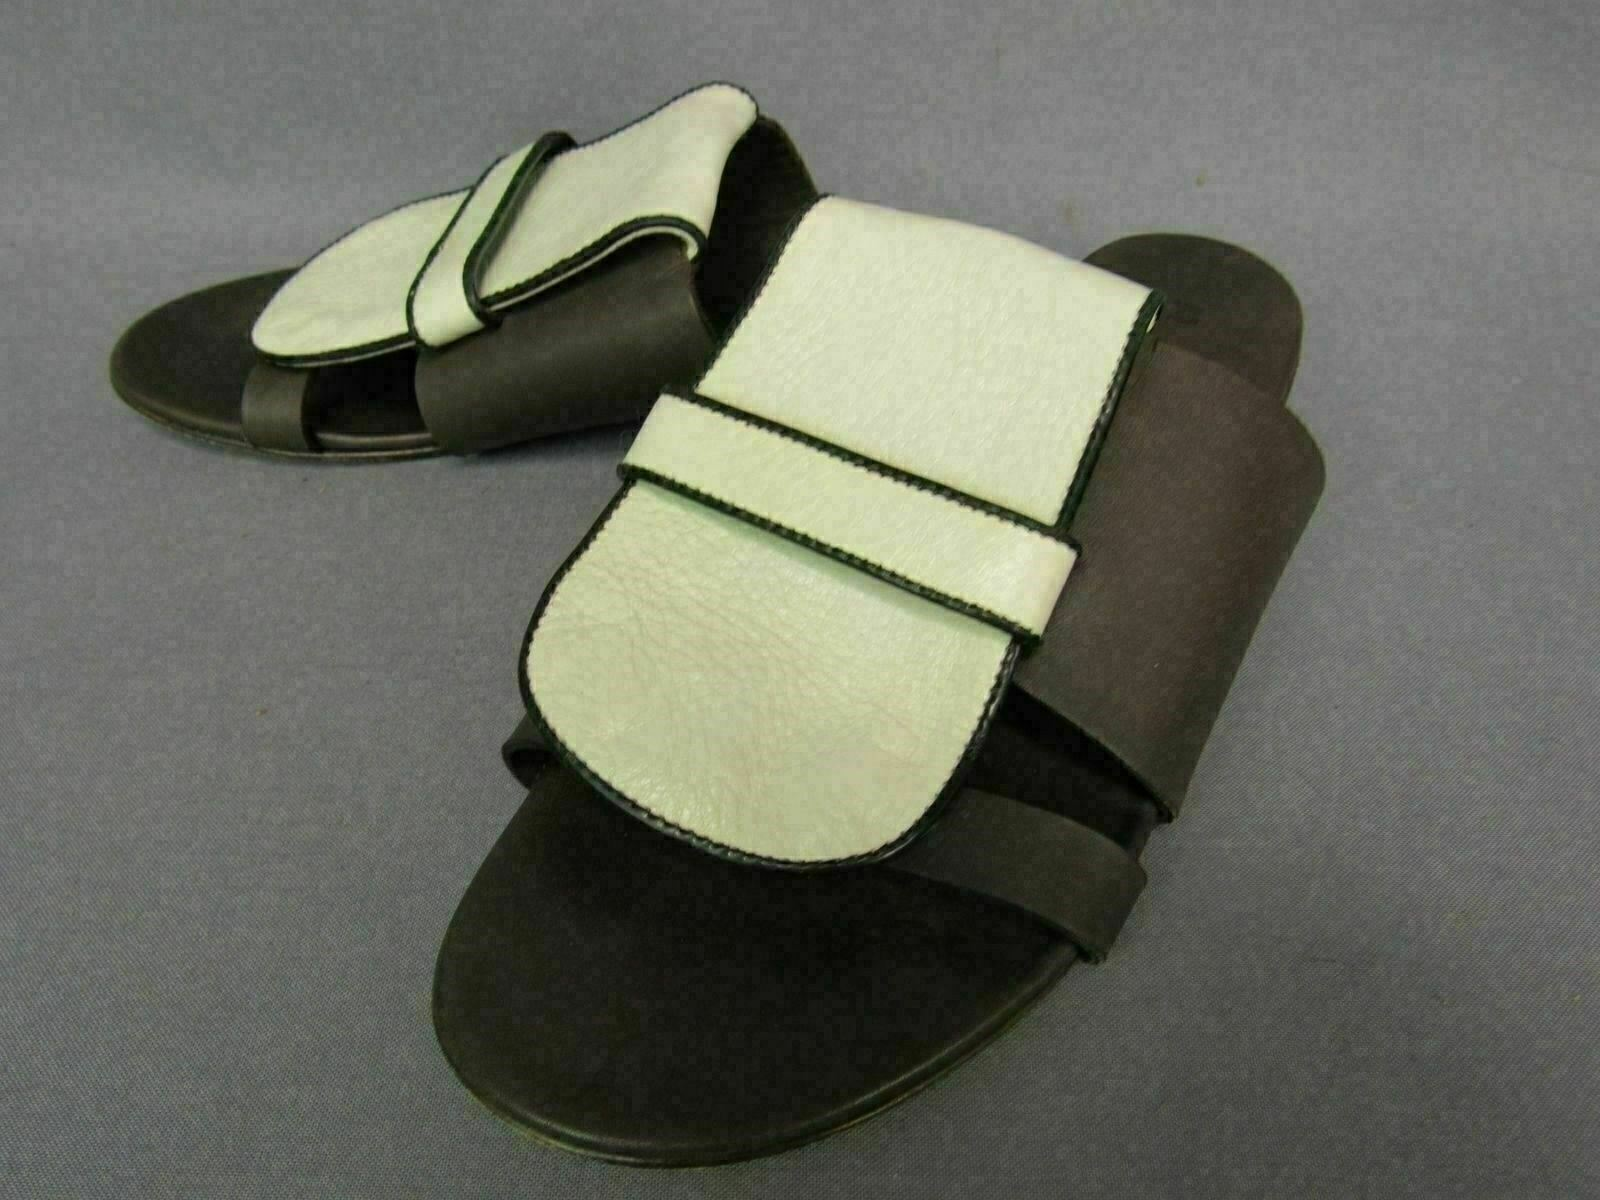 Marni  2 Tone Brown Off White Flat Leather Womens Sandals Size 37.5 7.5 8